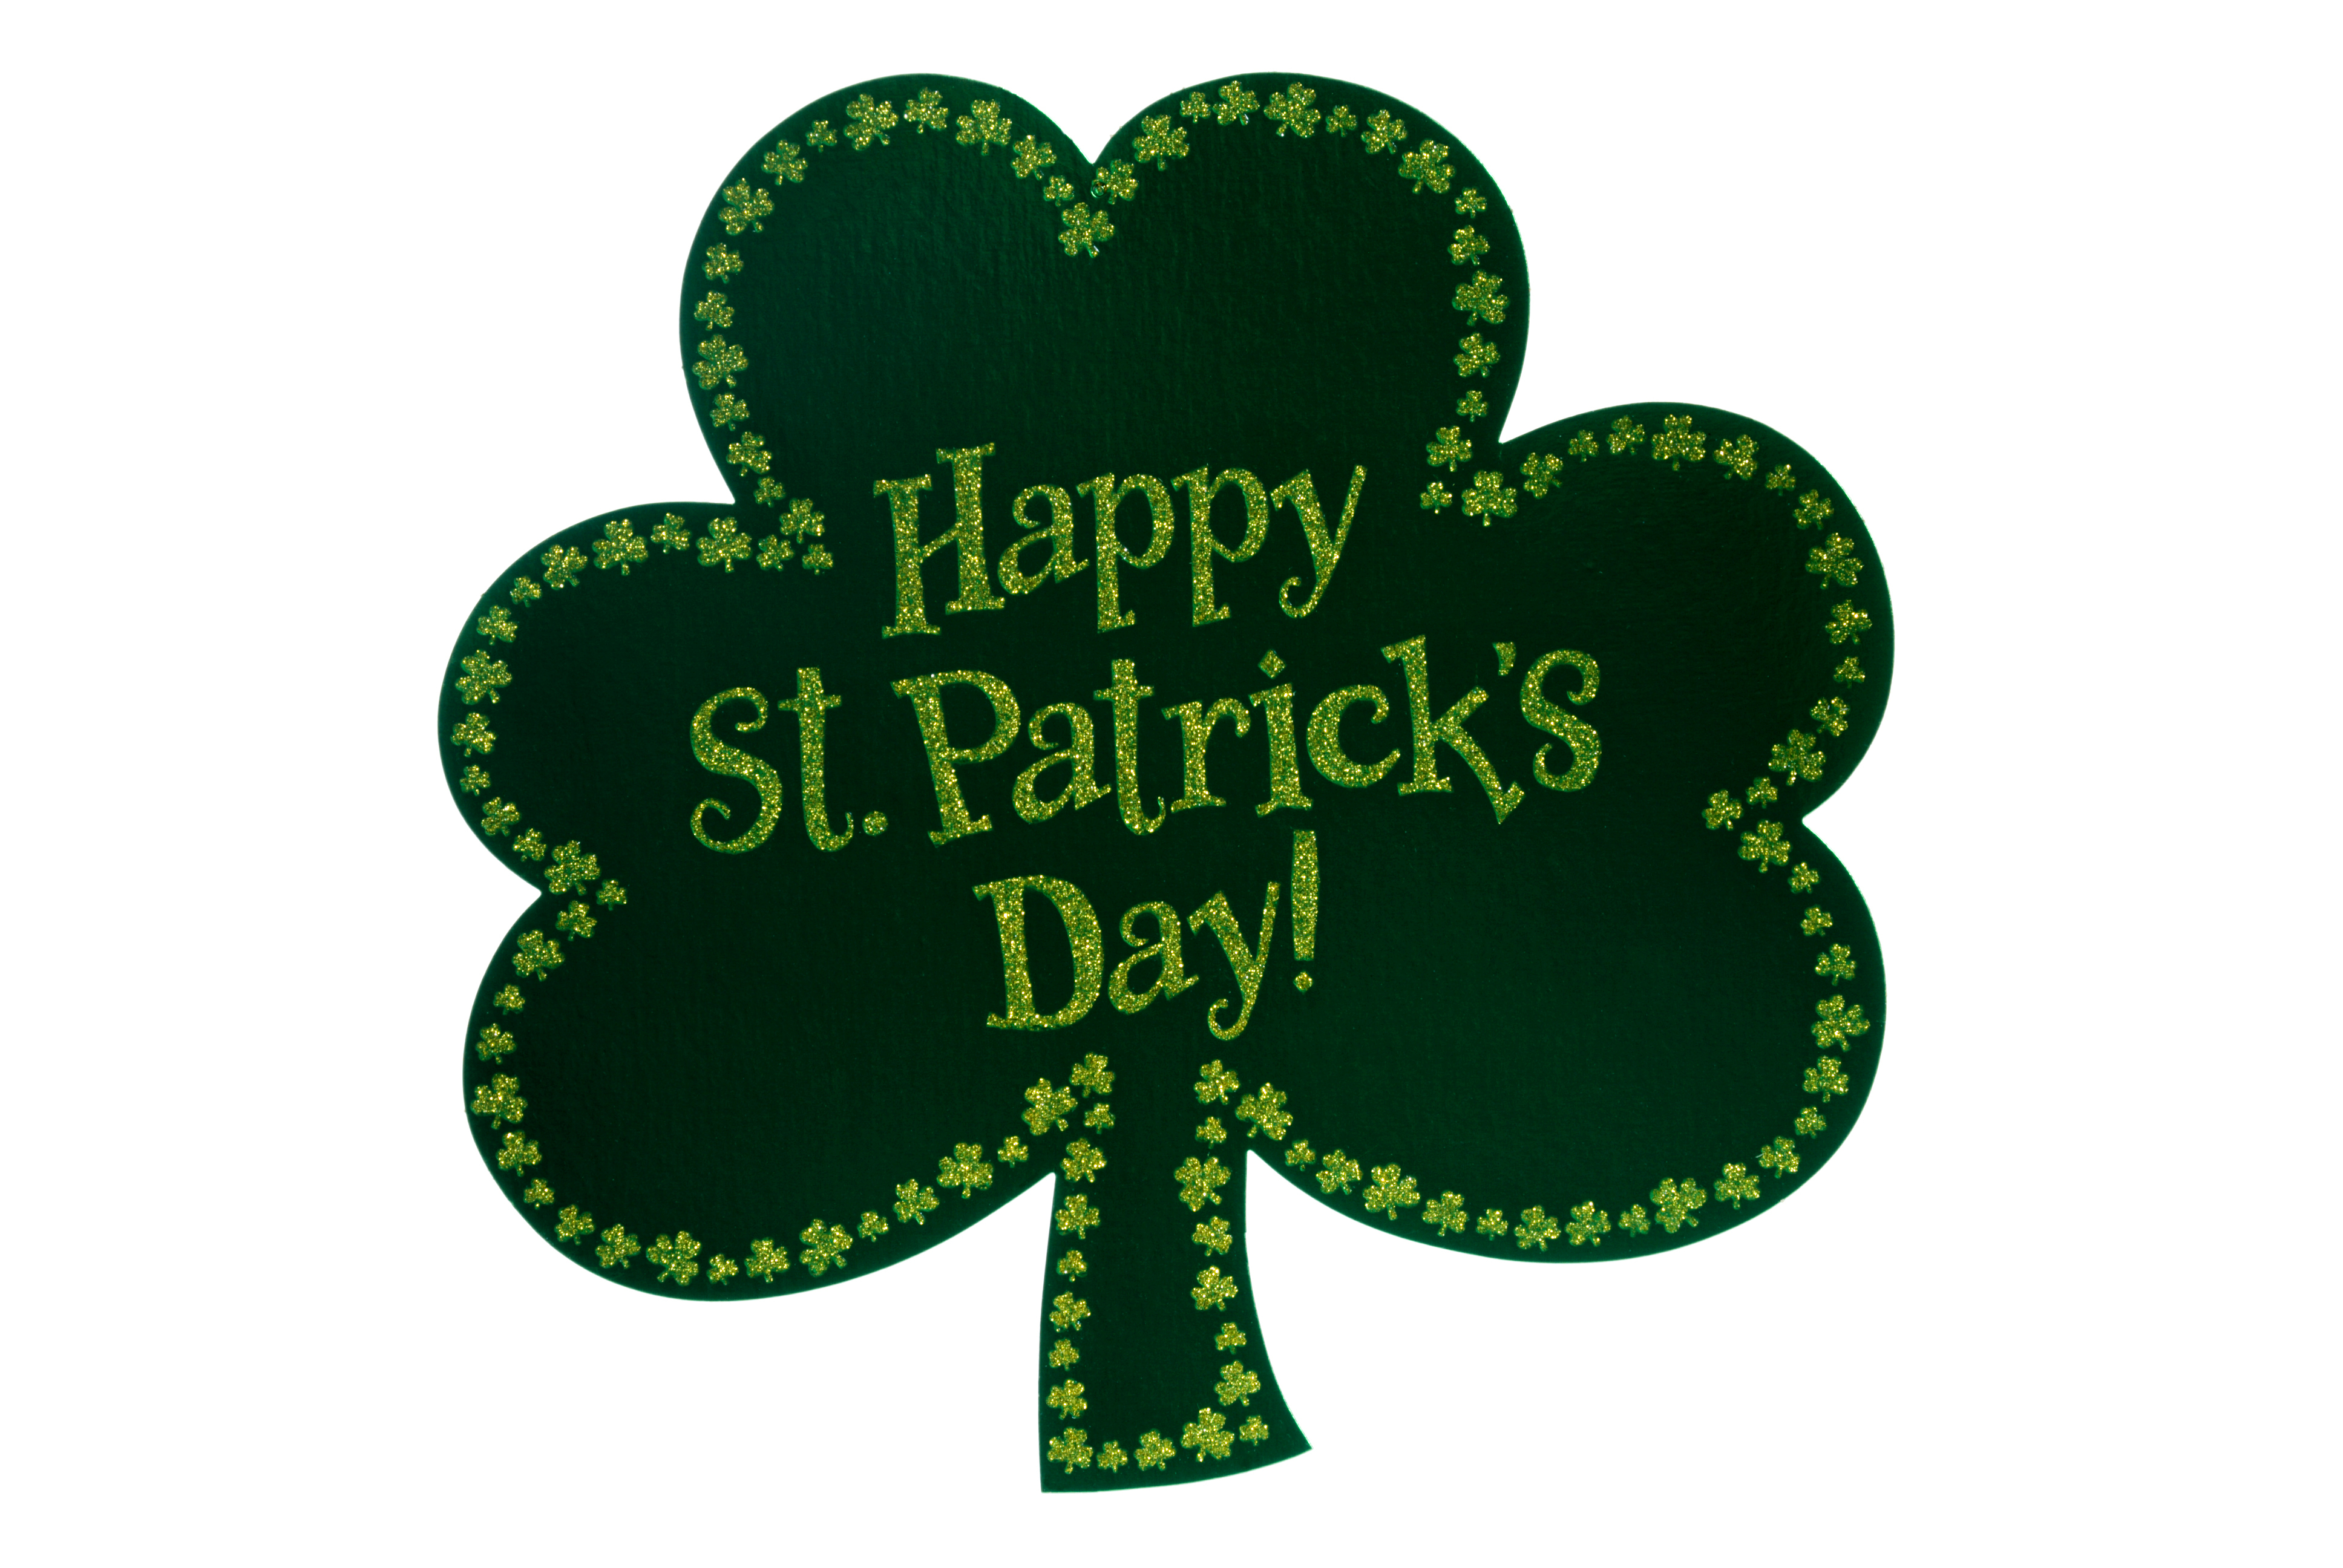 a lucky green shamrock with the words Happy St. Patricks Day imprinted on it.